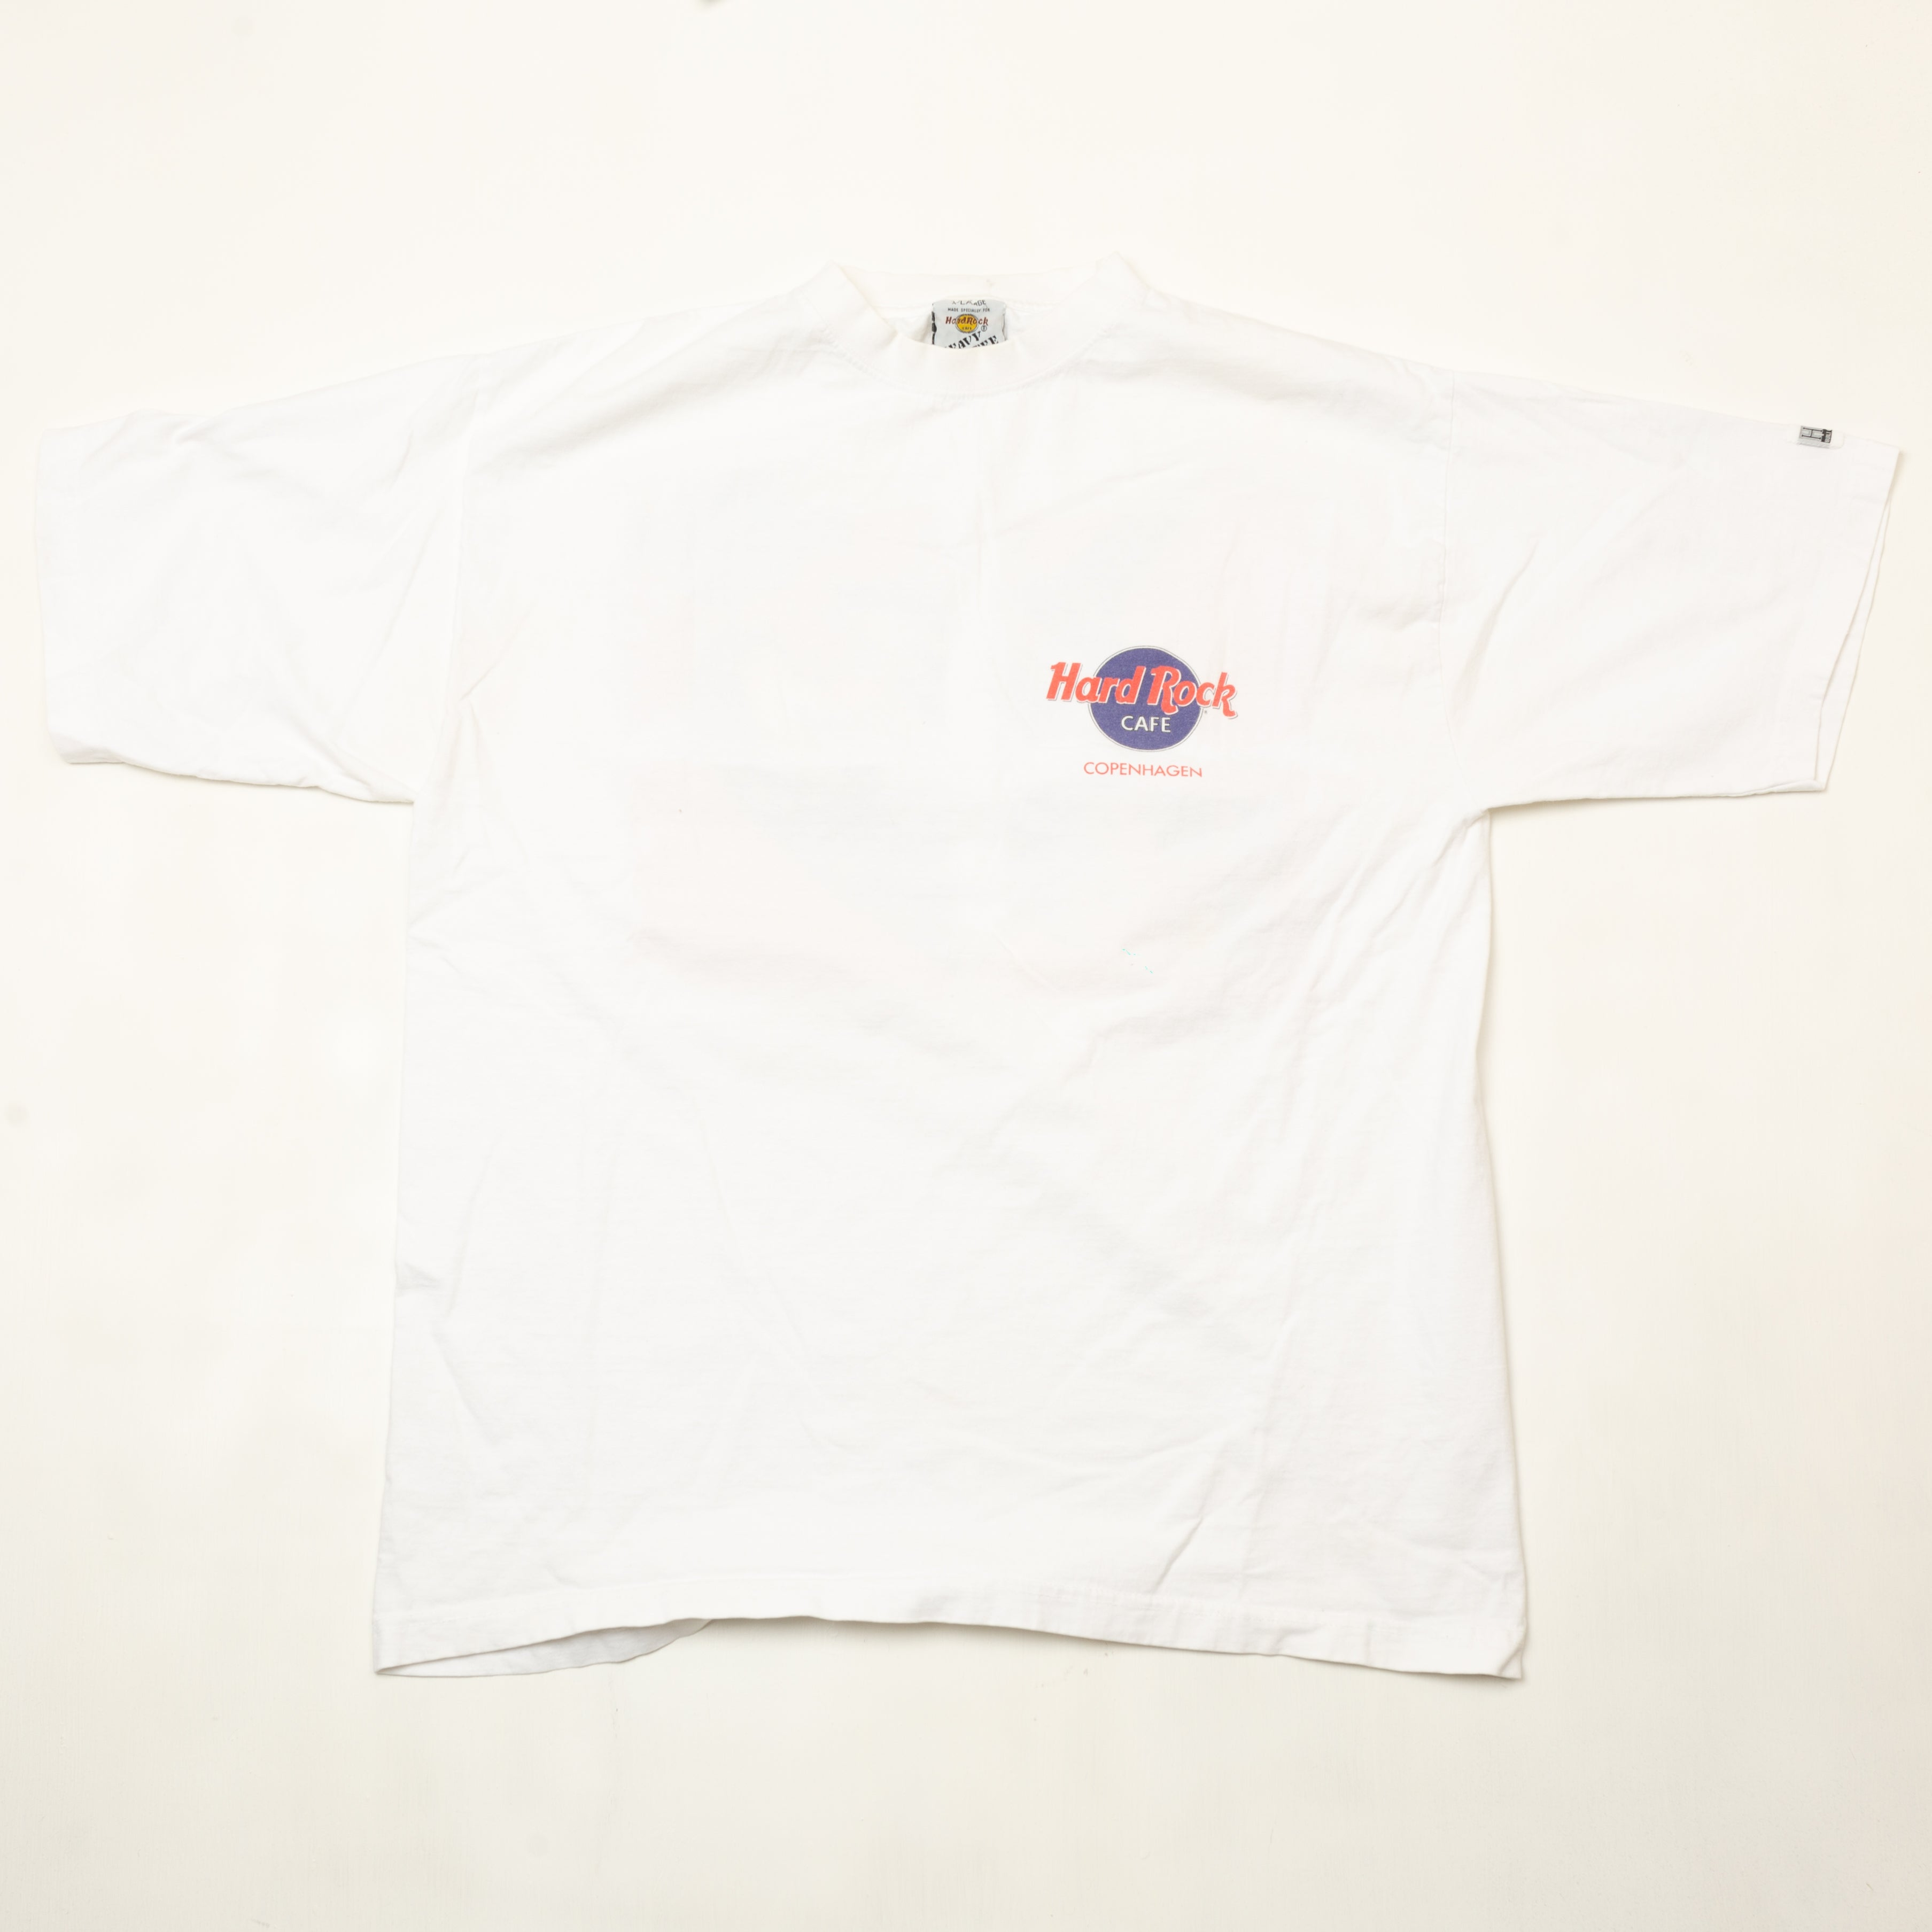 90's Hard Rock Cafe Copenhagen T-Shirt